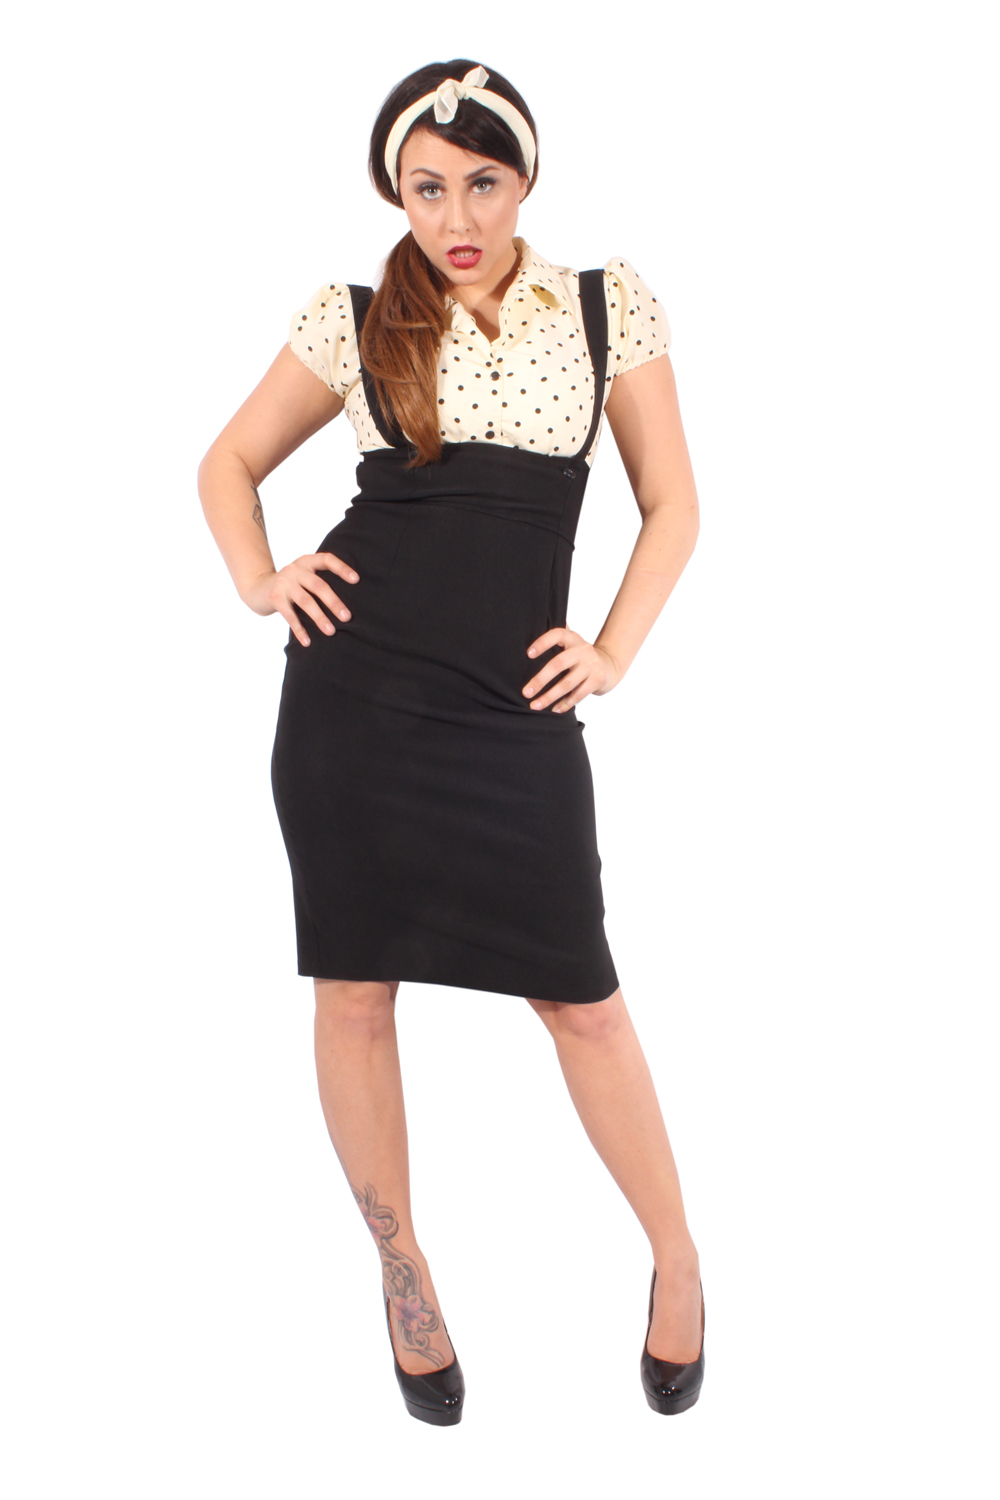 Polka Dots retro rockabilly Punkte Hosenträger Hemdkleid Pencil Kleid